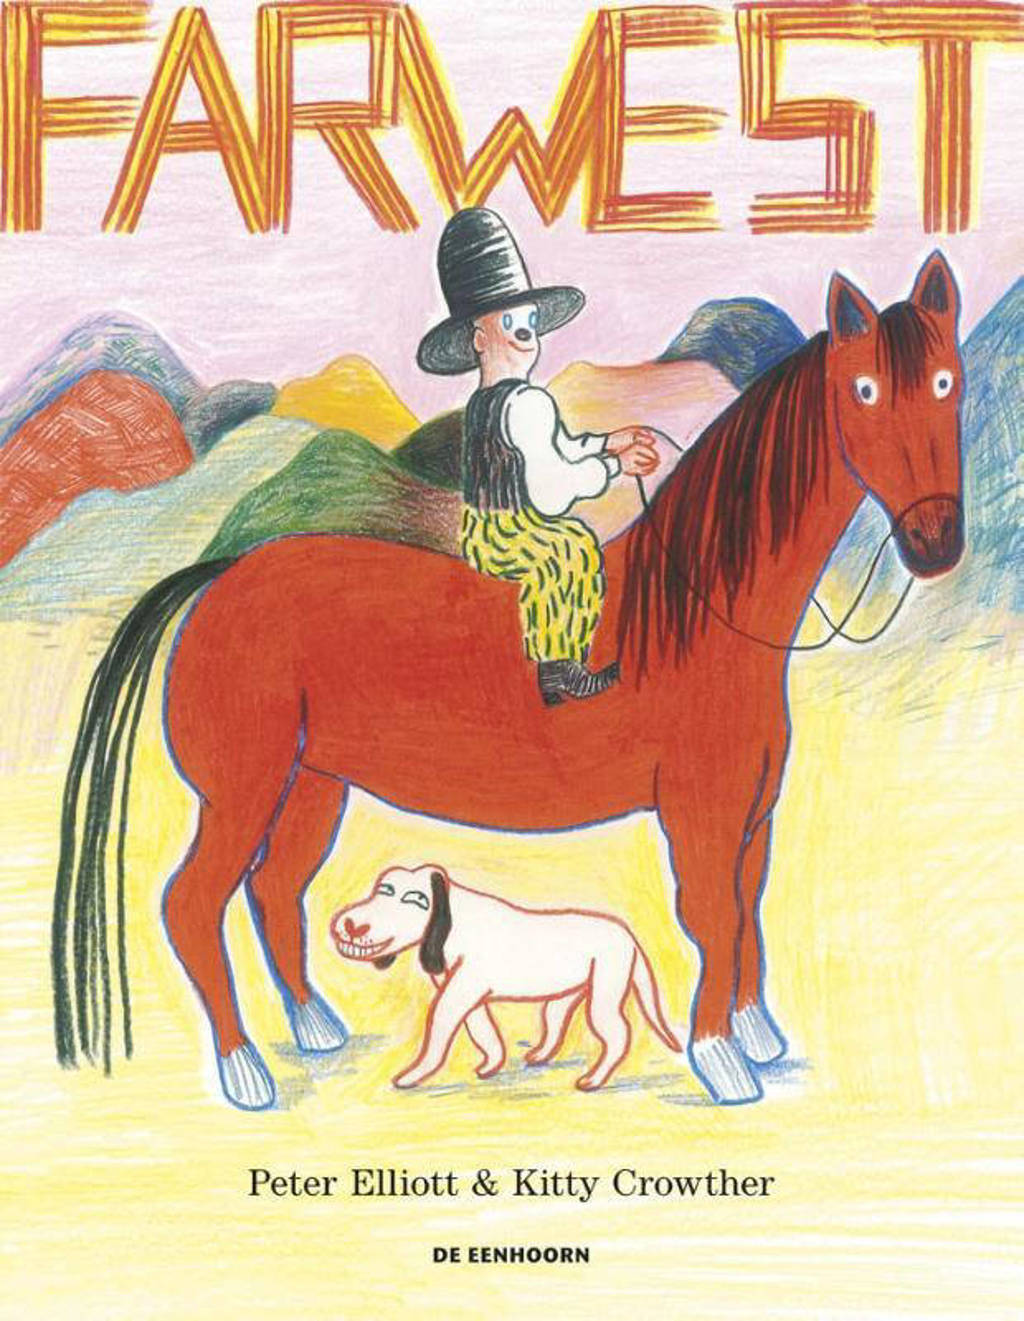 Farwest - Kitty Crowther